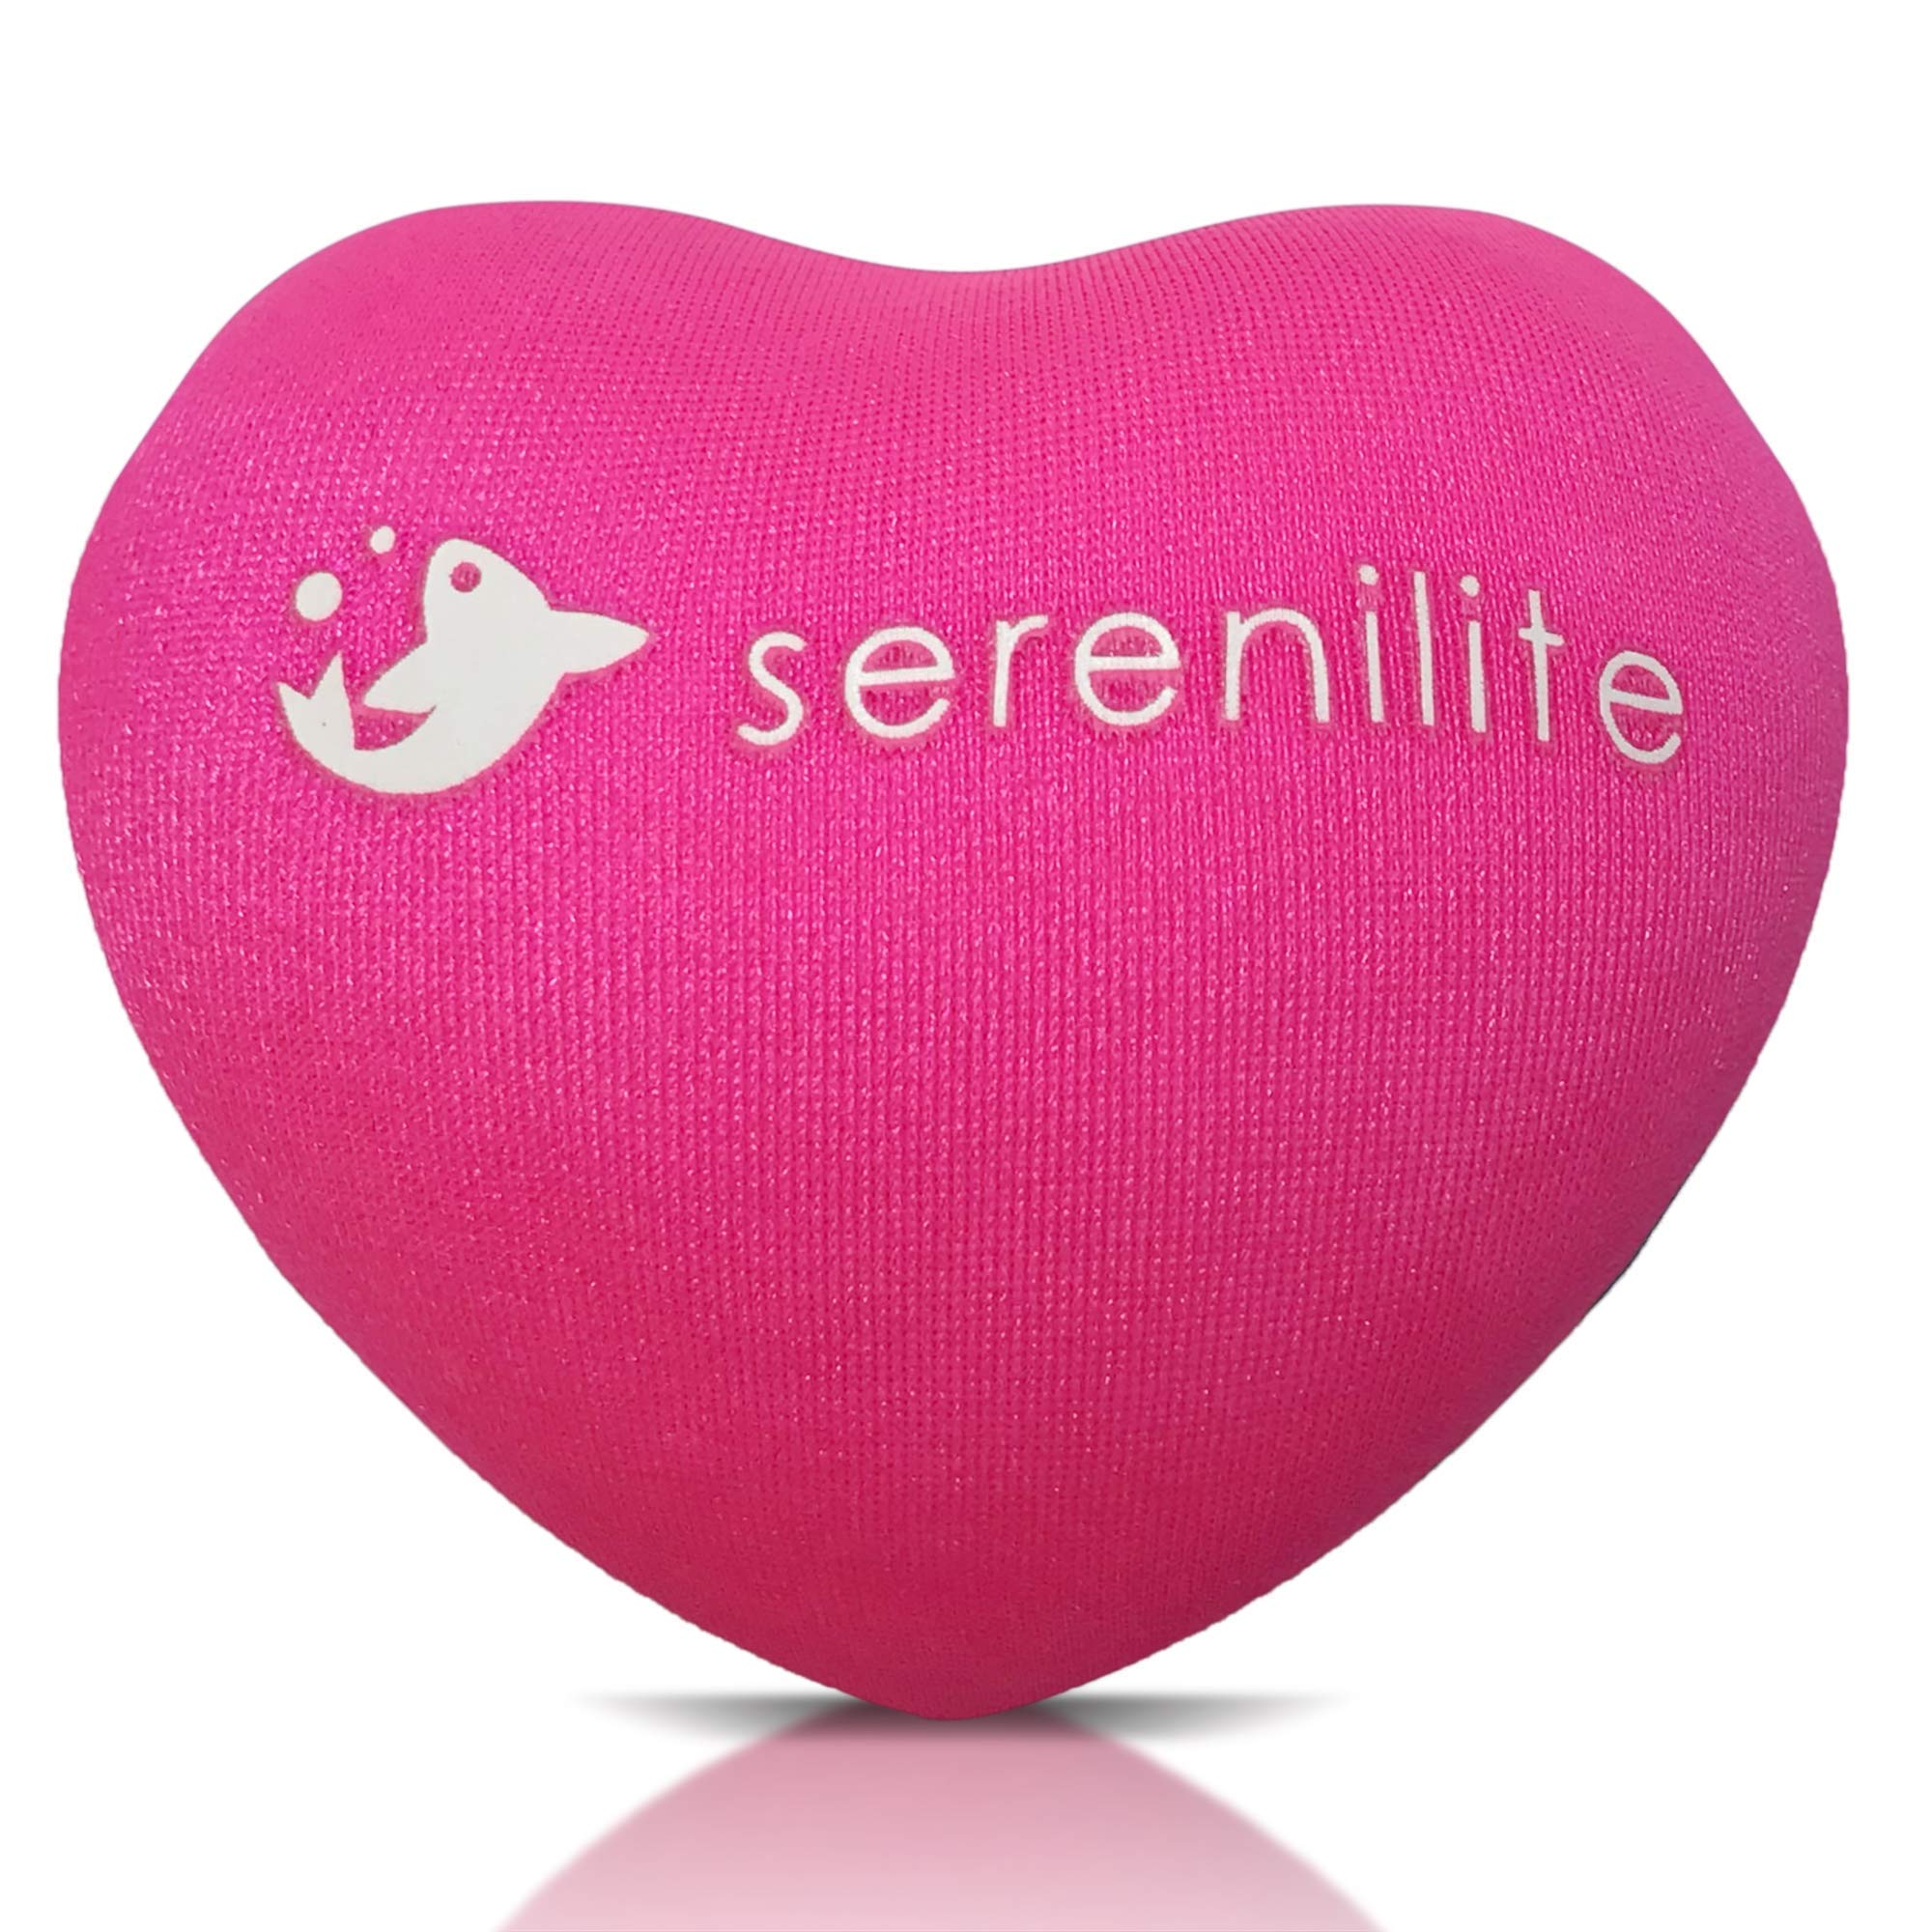 Serenilite Hand Therapy Stress Ball - Optimal Stress Relief - Great for Hand Exercises and Strengthening (Pink)